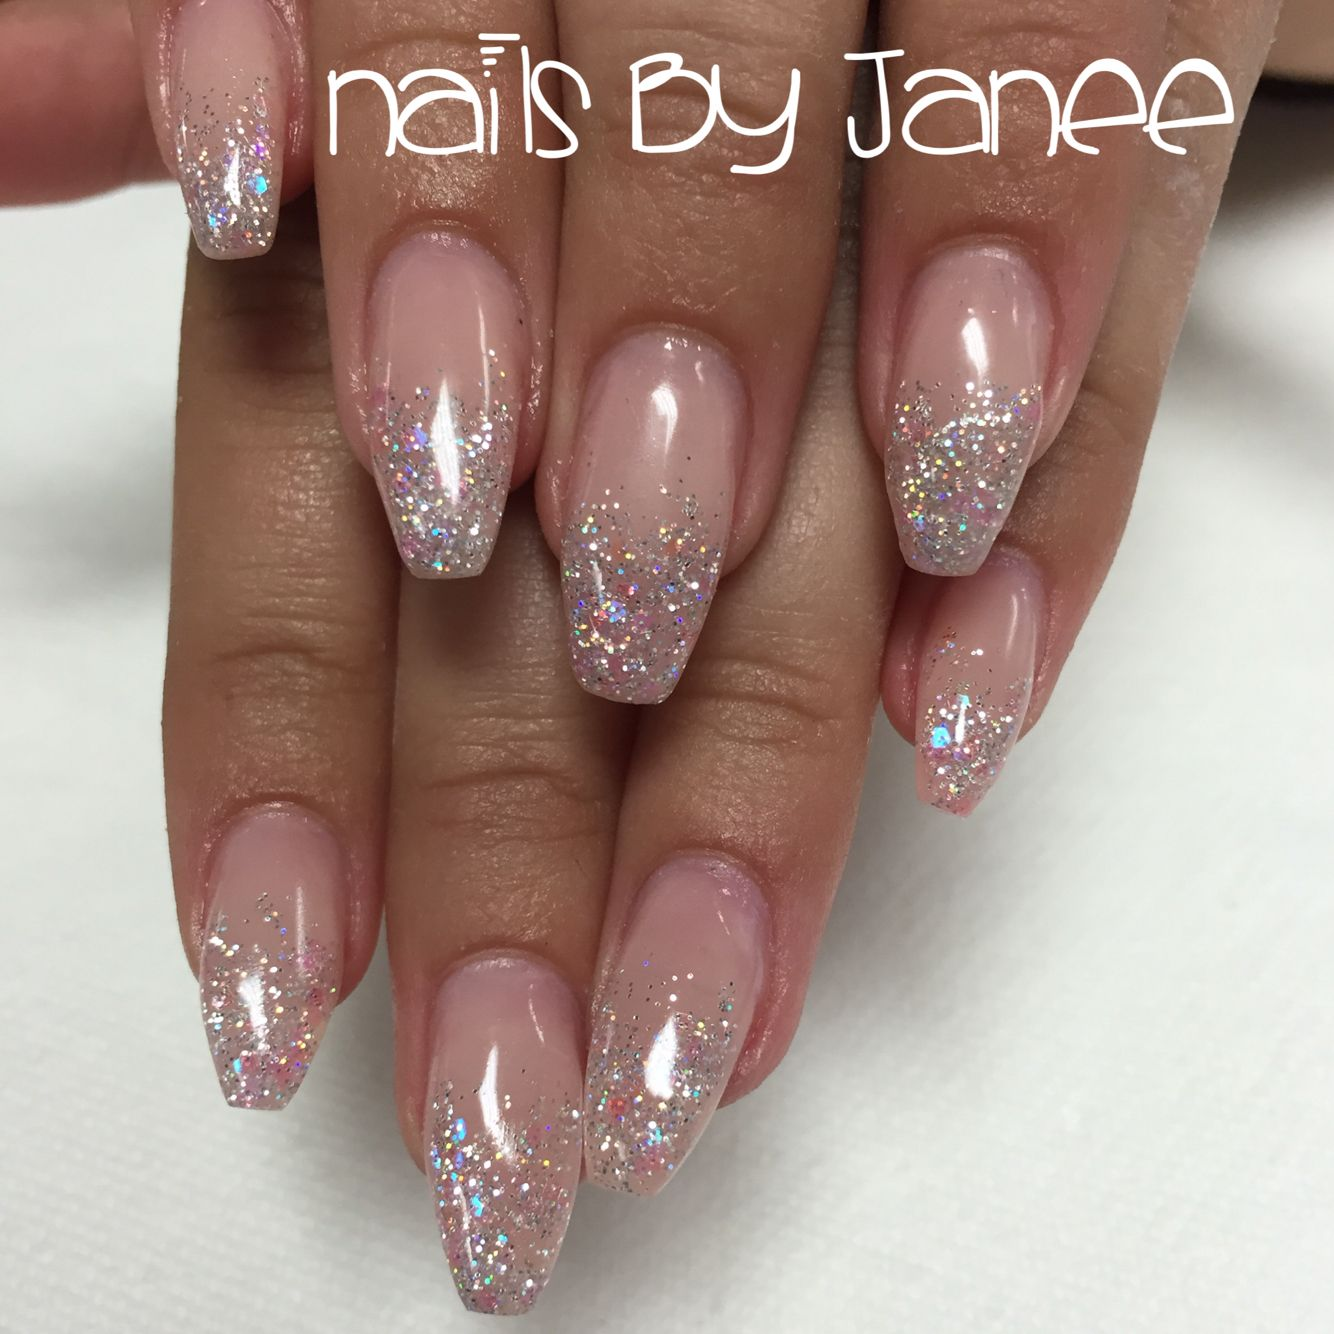 glitter pink ballerina nails by janee nailed it pinterest ballerina nails wild hair and. Black Bedroom Furniture Sets. Home Design Ideas